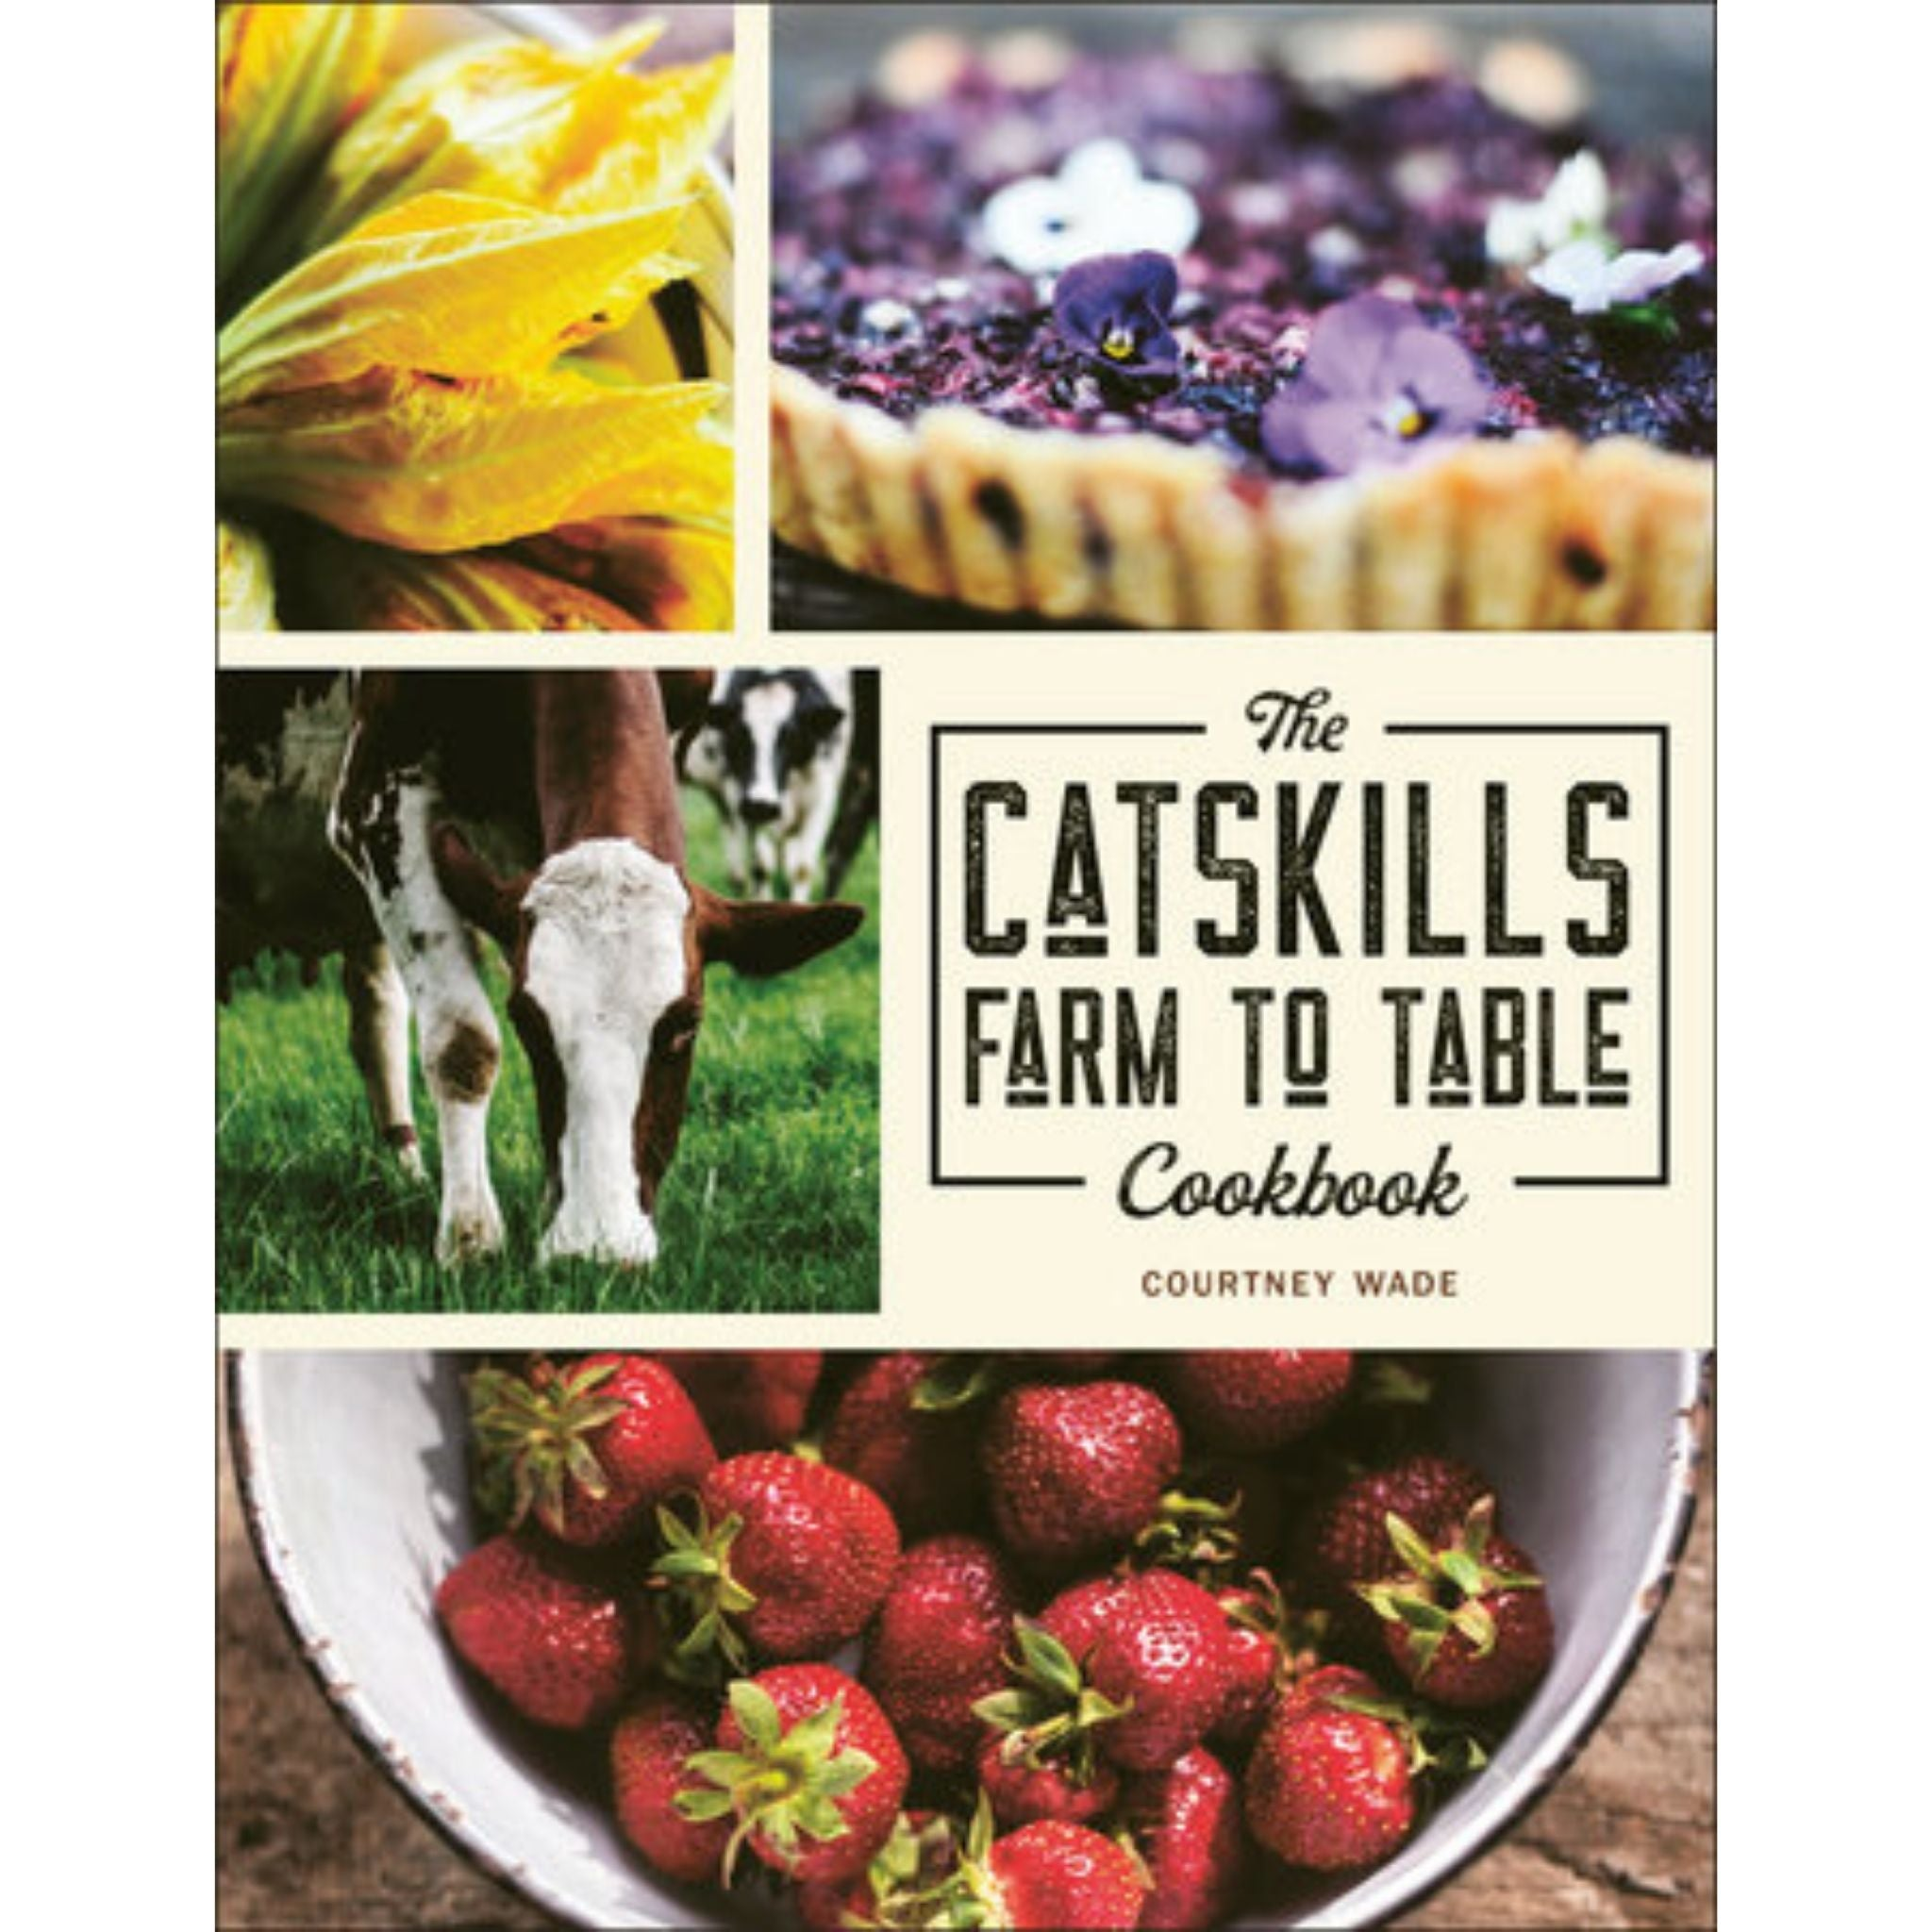 The Catskills Farm to Table Cookbook